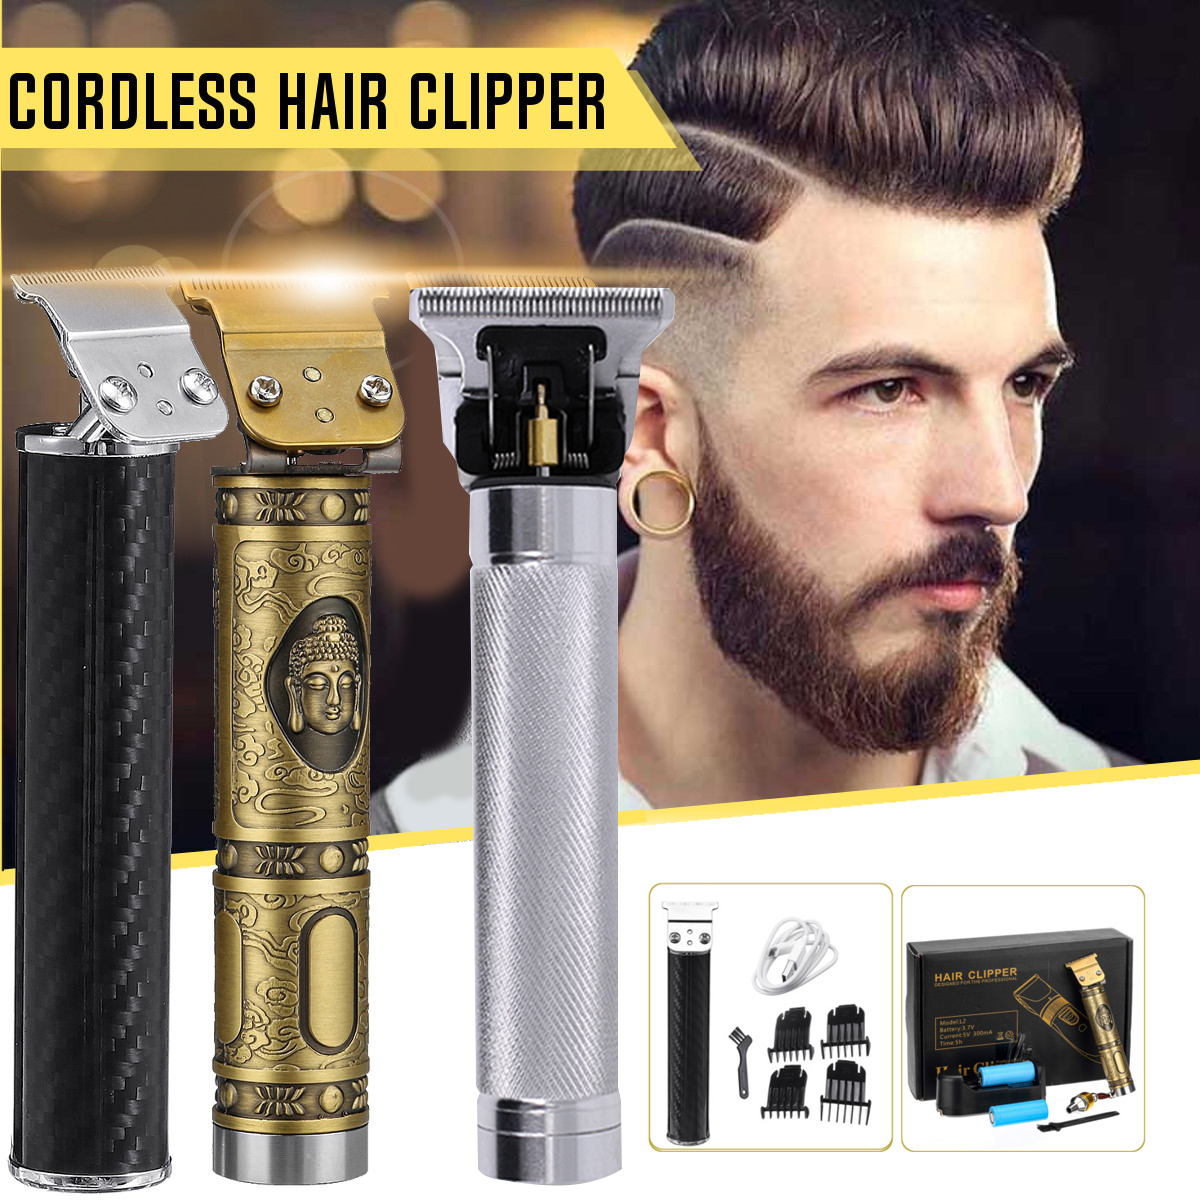 US $11.11 11% OFFClose cutting Digital Hair Trimmer Rechargeable Electric  Hair Clipper barbershop Cordless 11mm t blade baldheaded outliner menHair